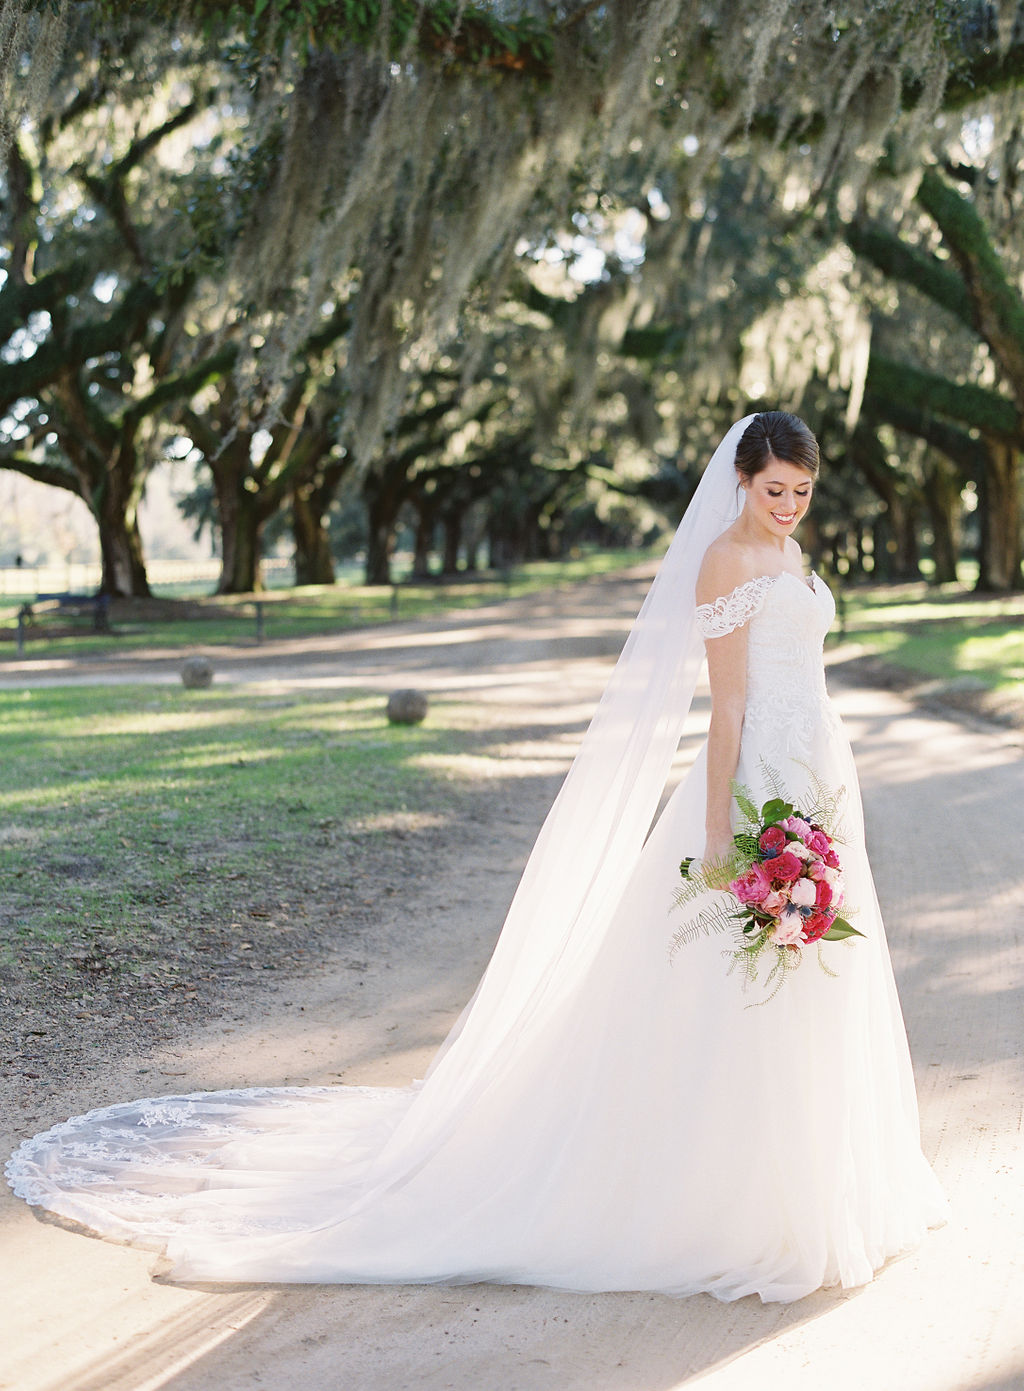 Vows by the River, Events by Reagan, Boone Hall Plantation Wedding, Charleston Event Planner